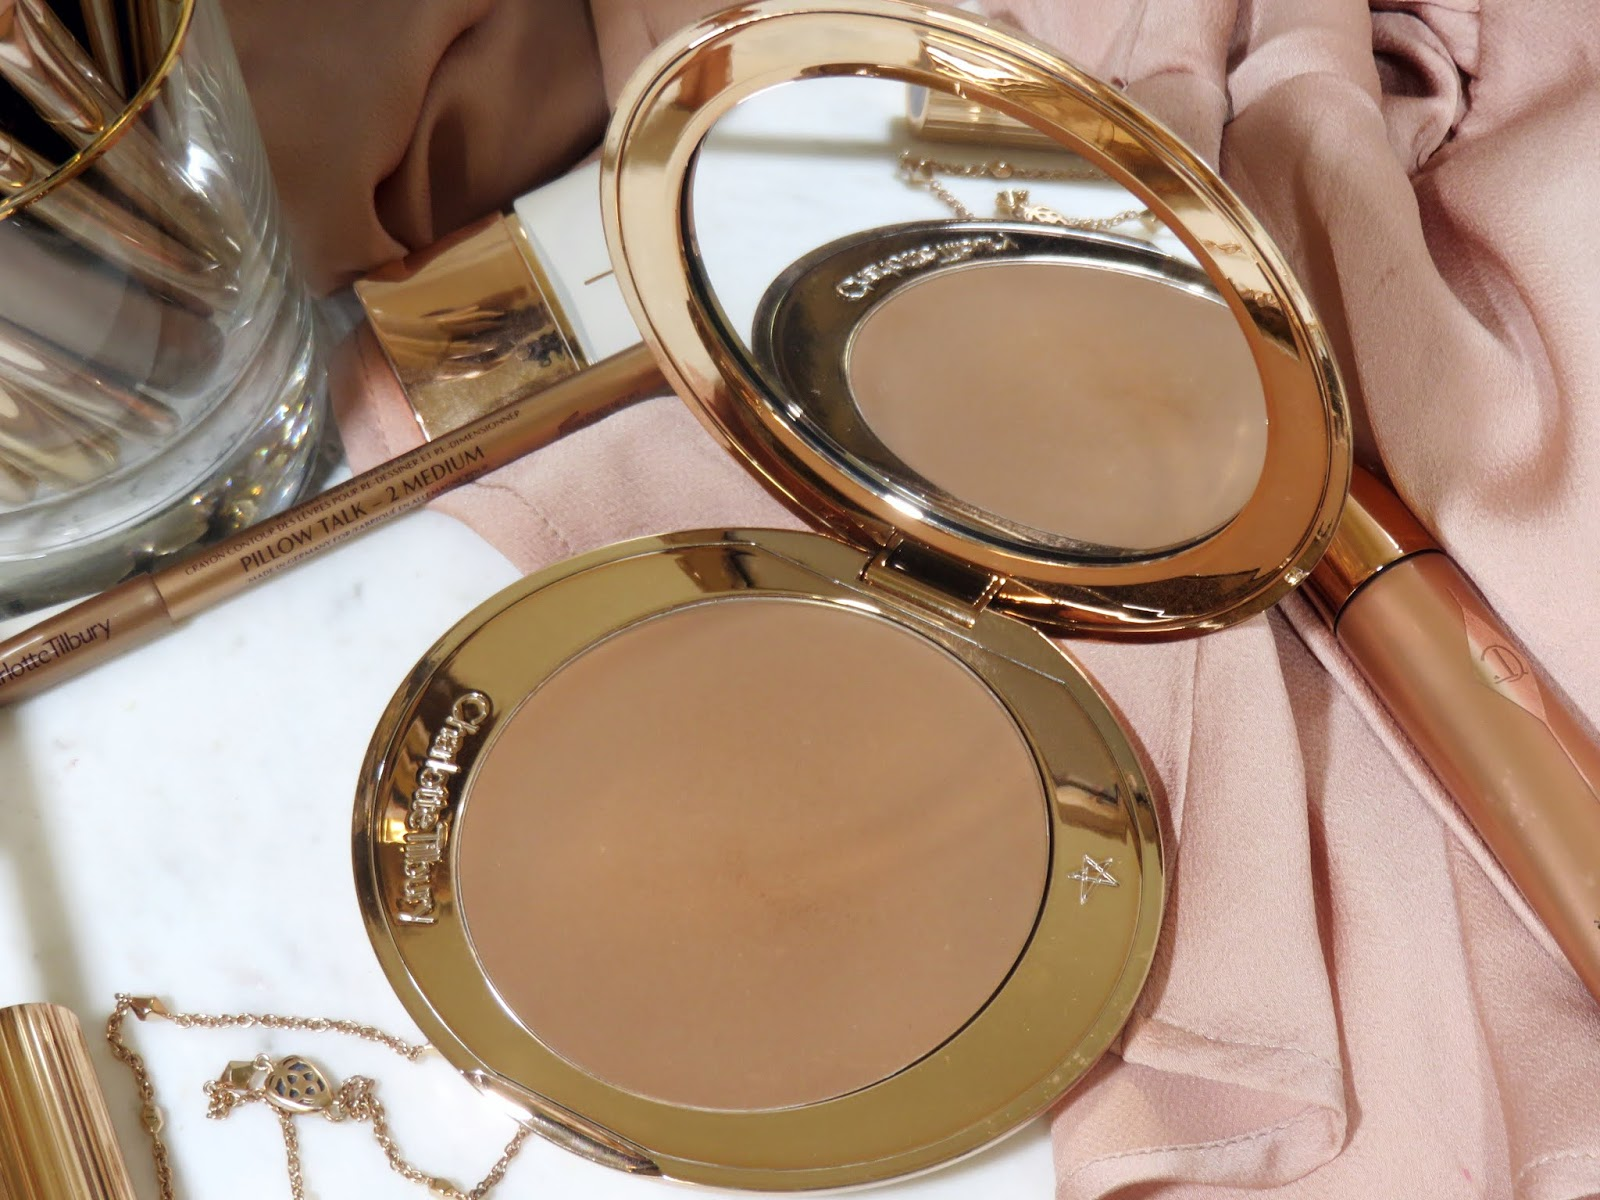 Charlotte Tilbury Airbrush Flawless Bronzer Review and Swatches